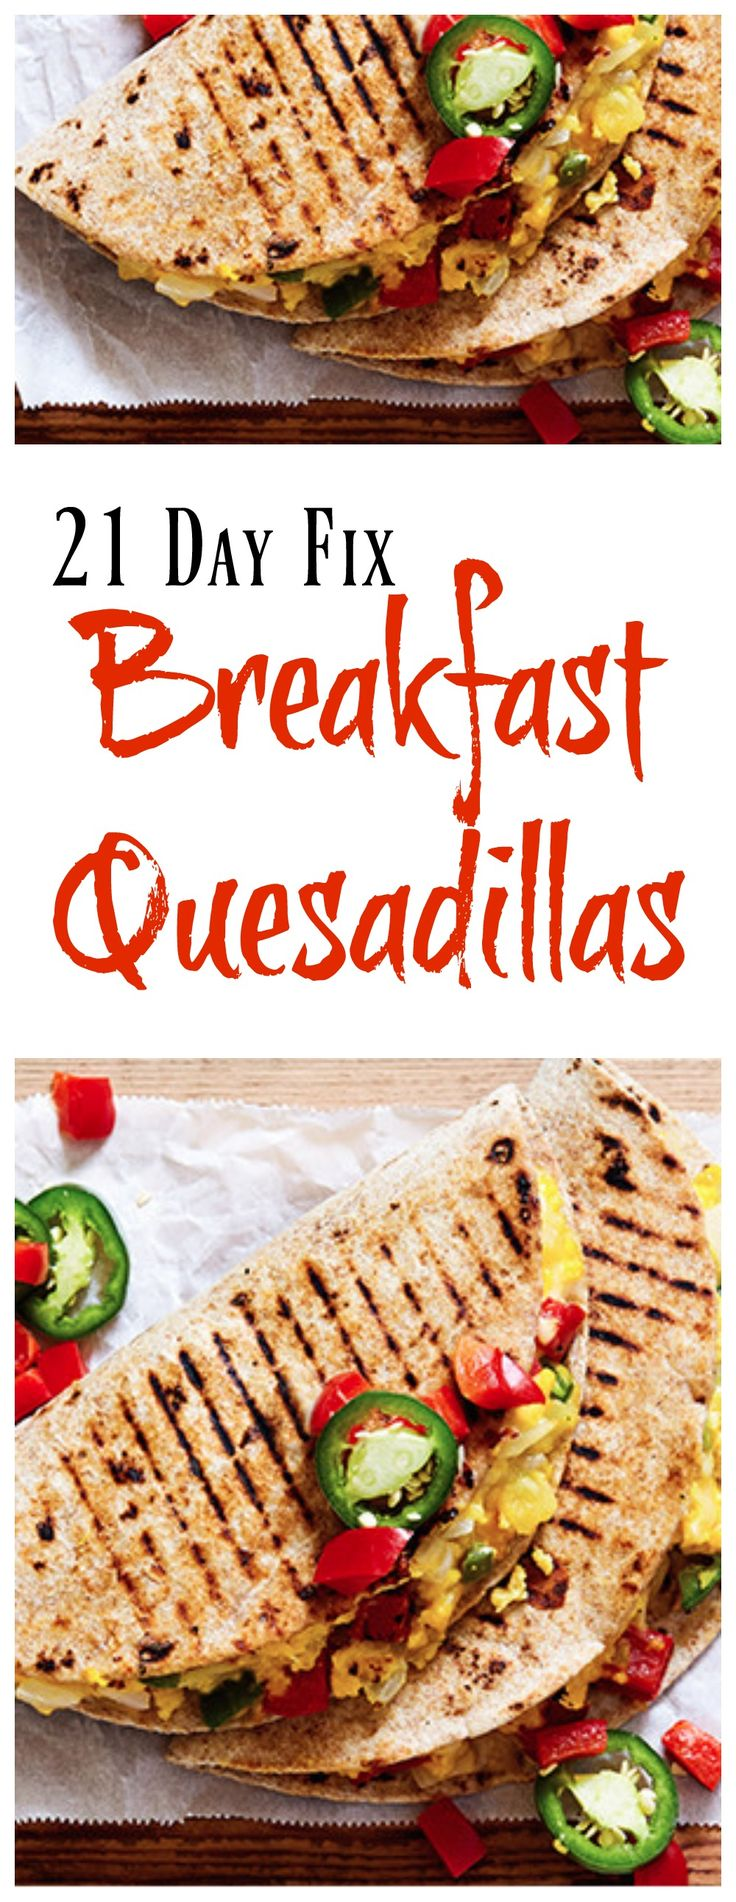 21 Day Fix Breakfast Quesadillas #21dayfixrecipes #21dayfixbreakfast #21dayfix…